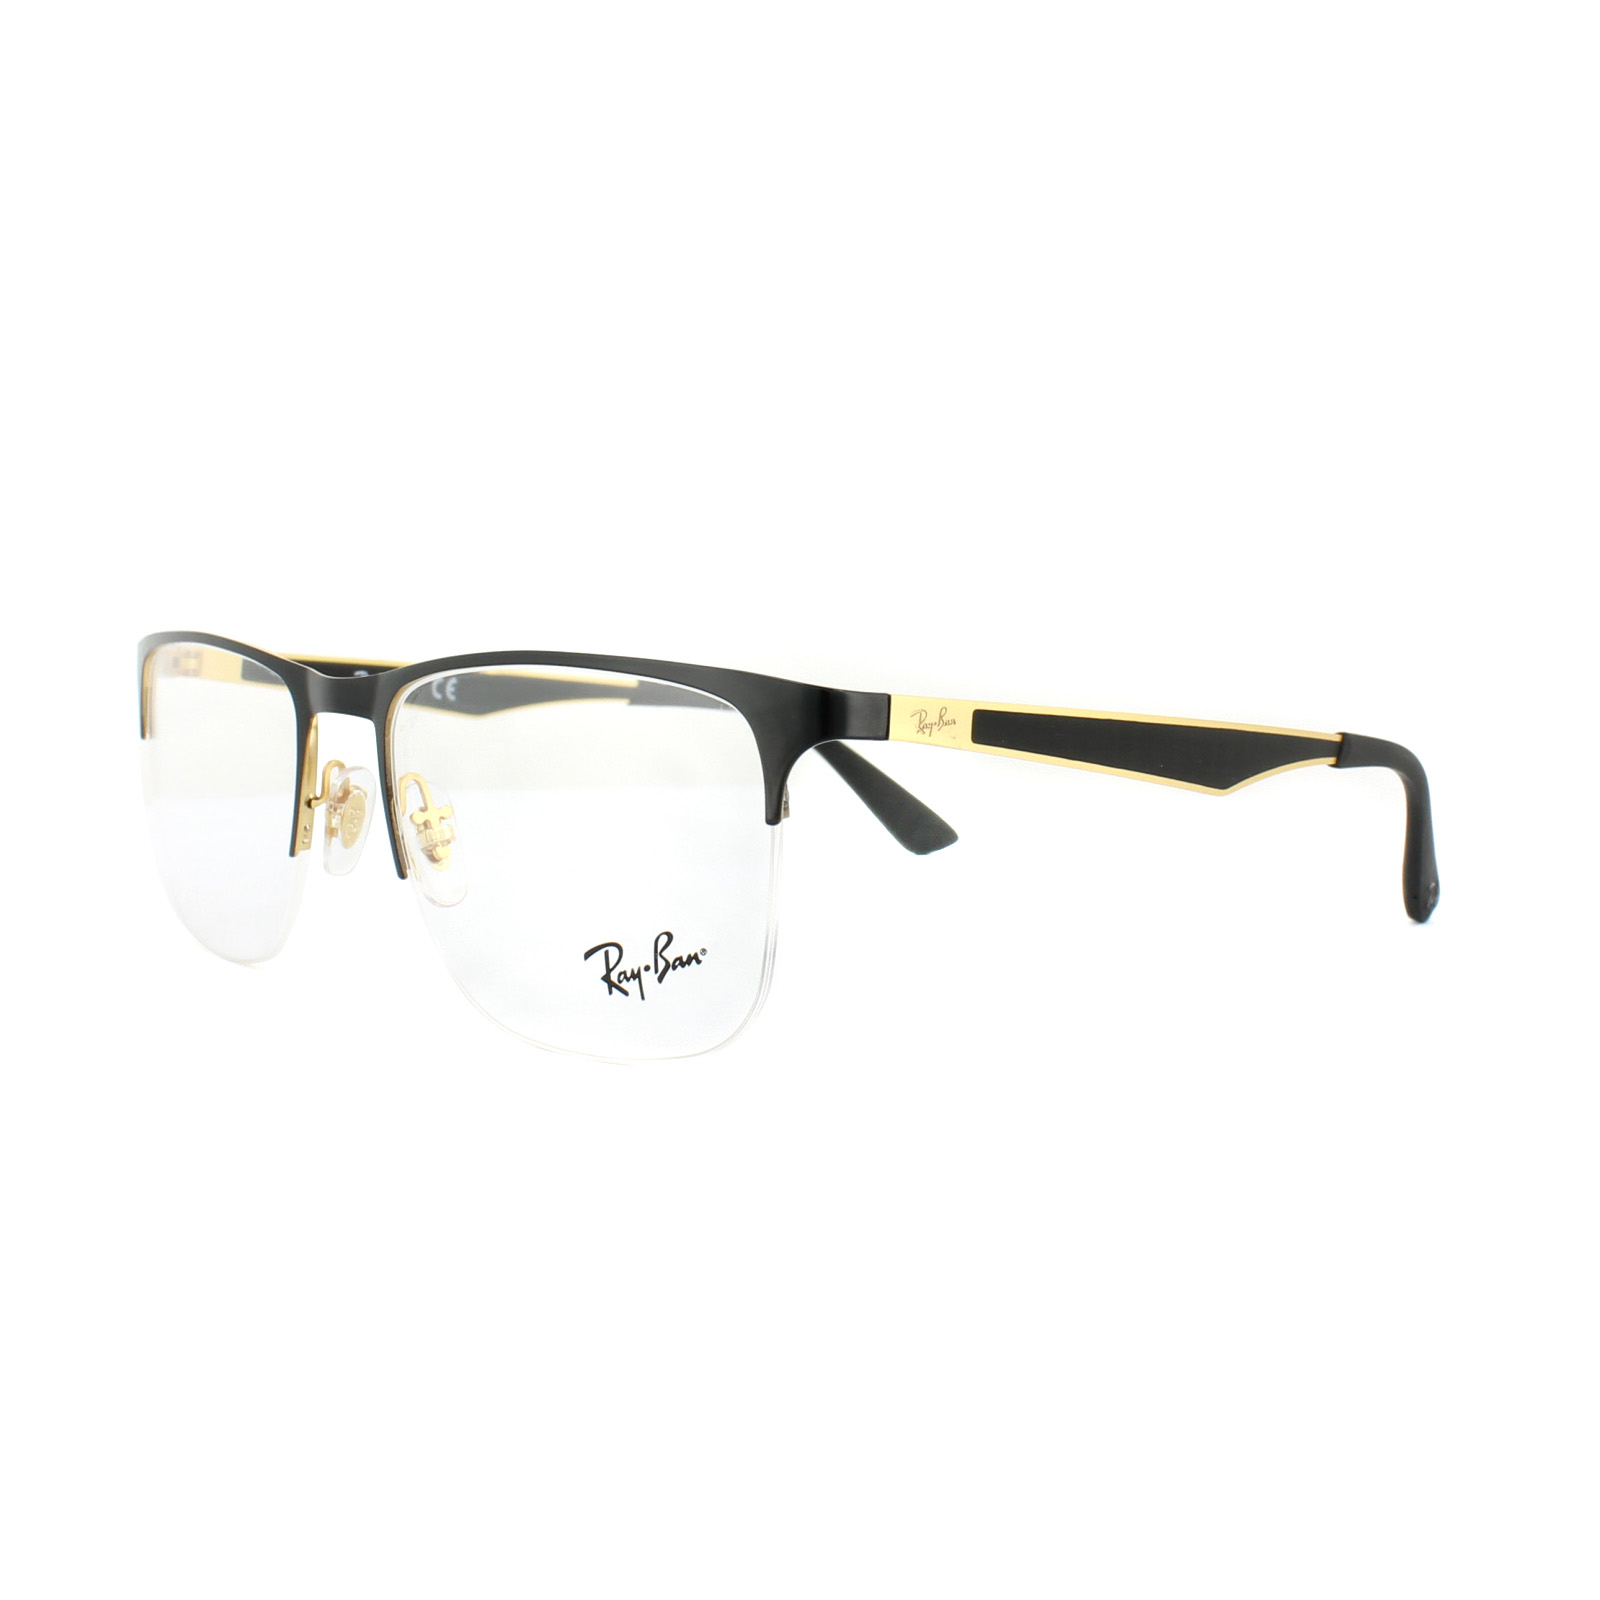 77574a7fd3 Sentinel Ray-Ban Glasses Frames RX 6362 2890 Gold Top Shiny Black Mens 55mm